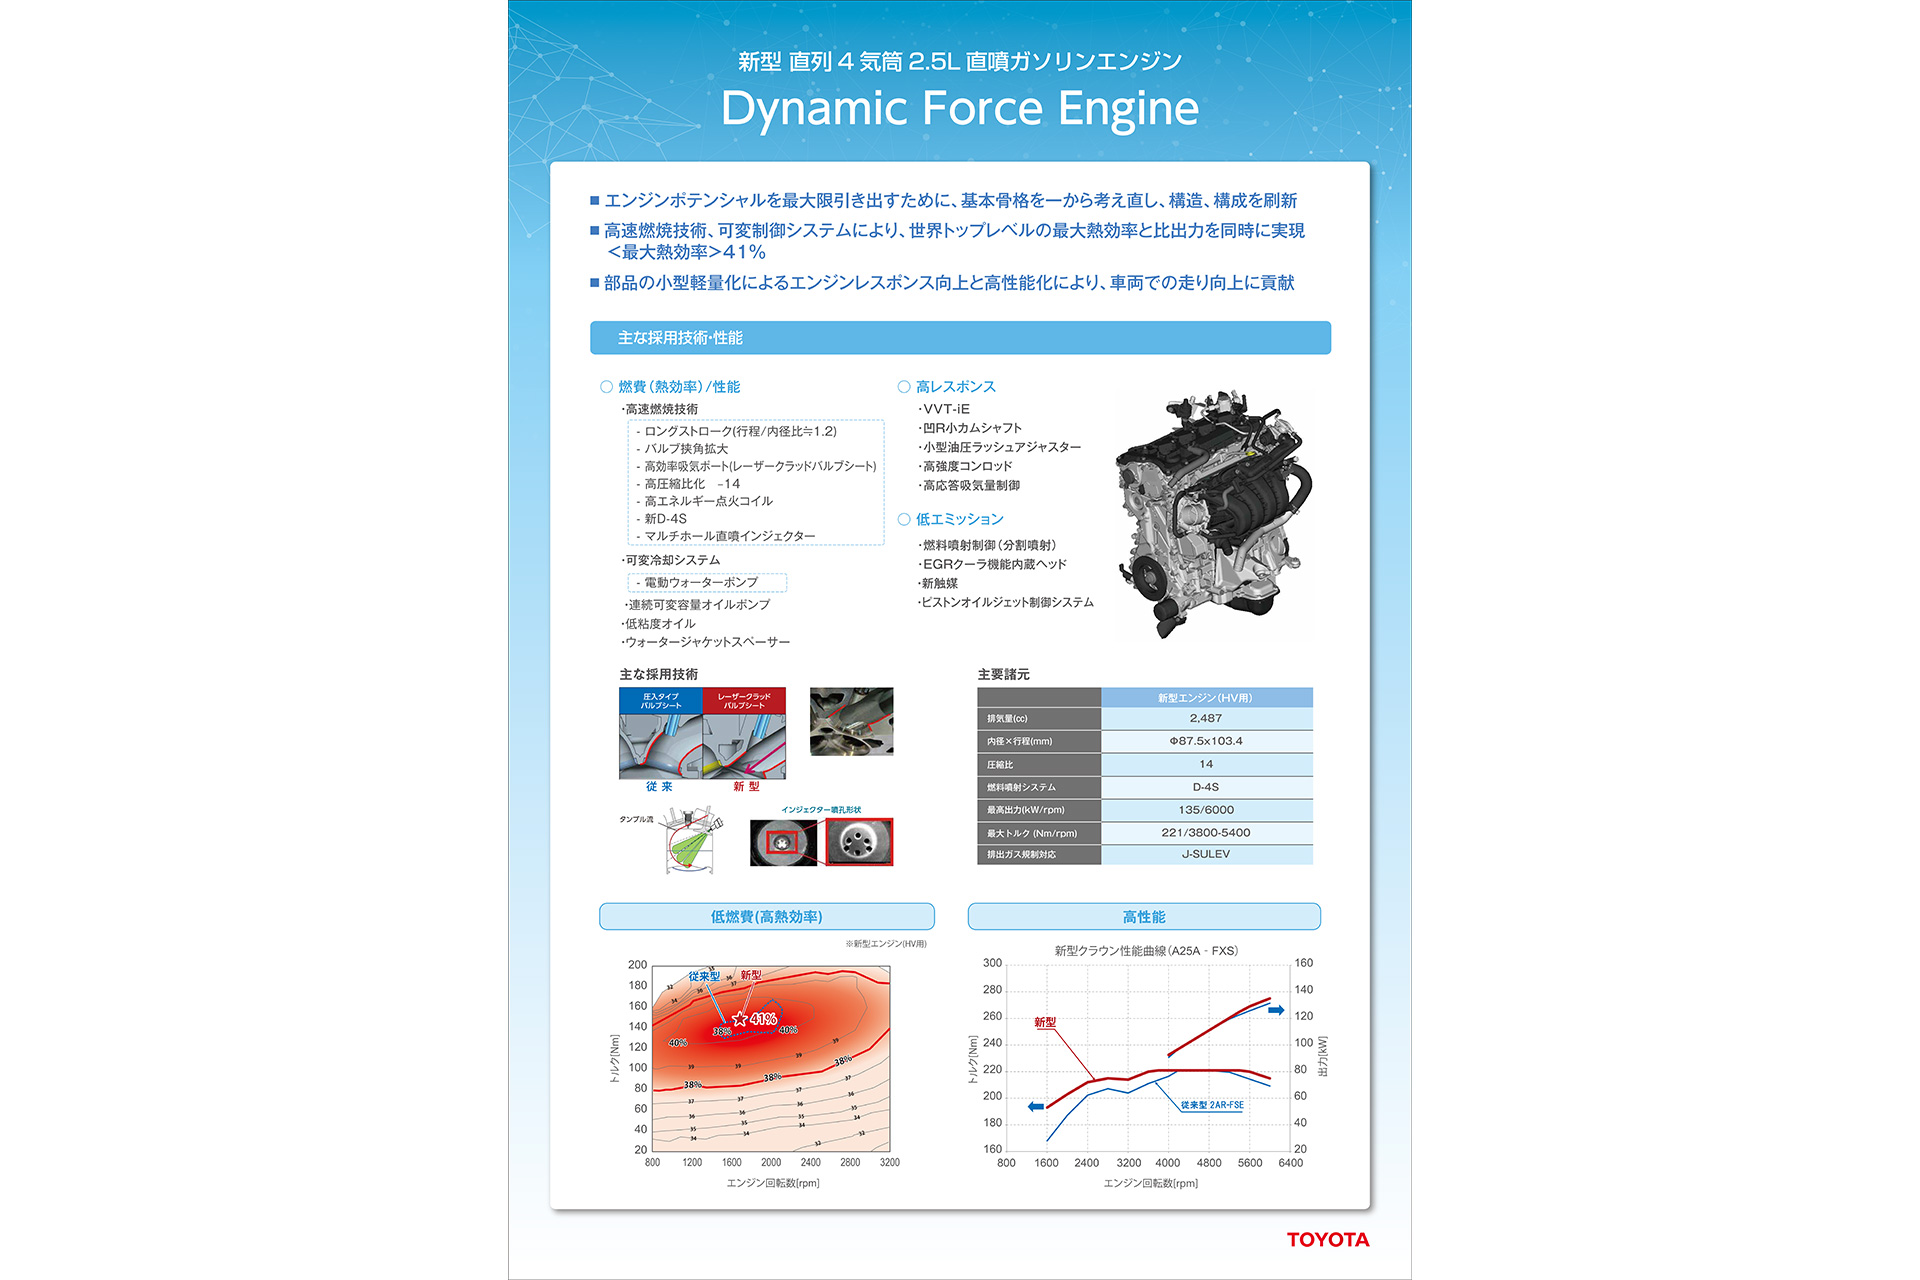 Dynamic Force Engine